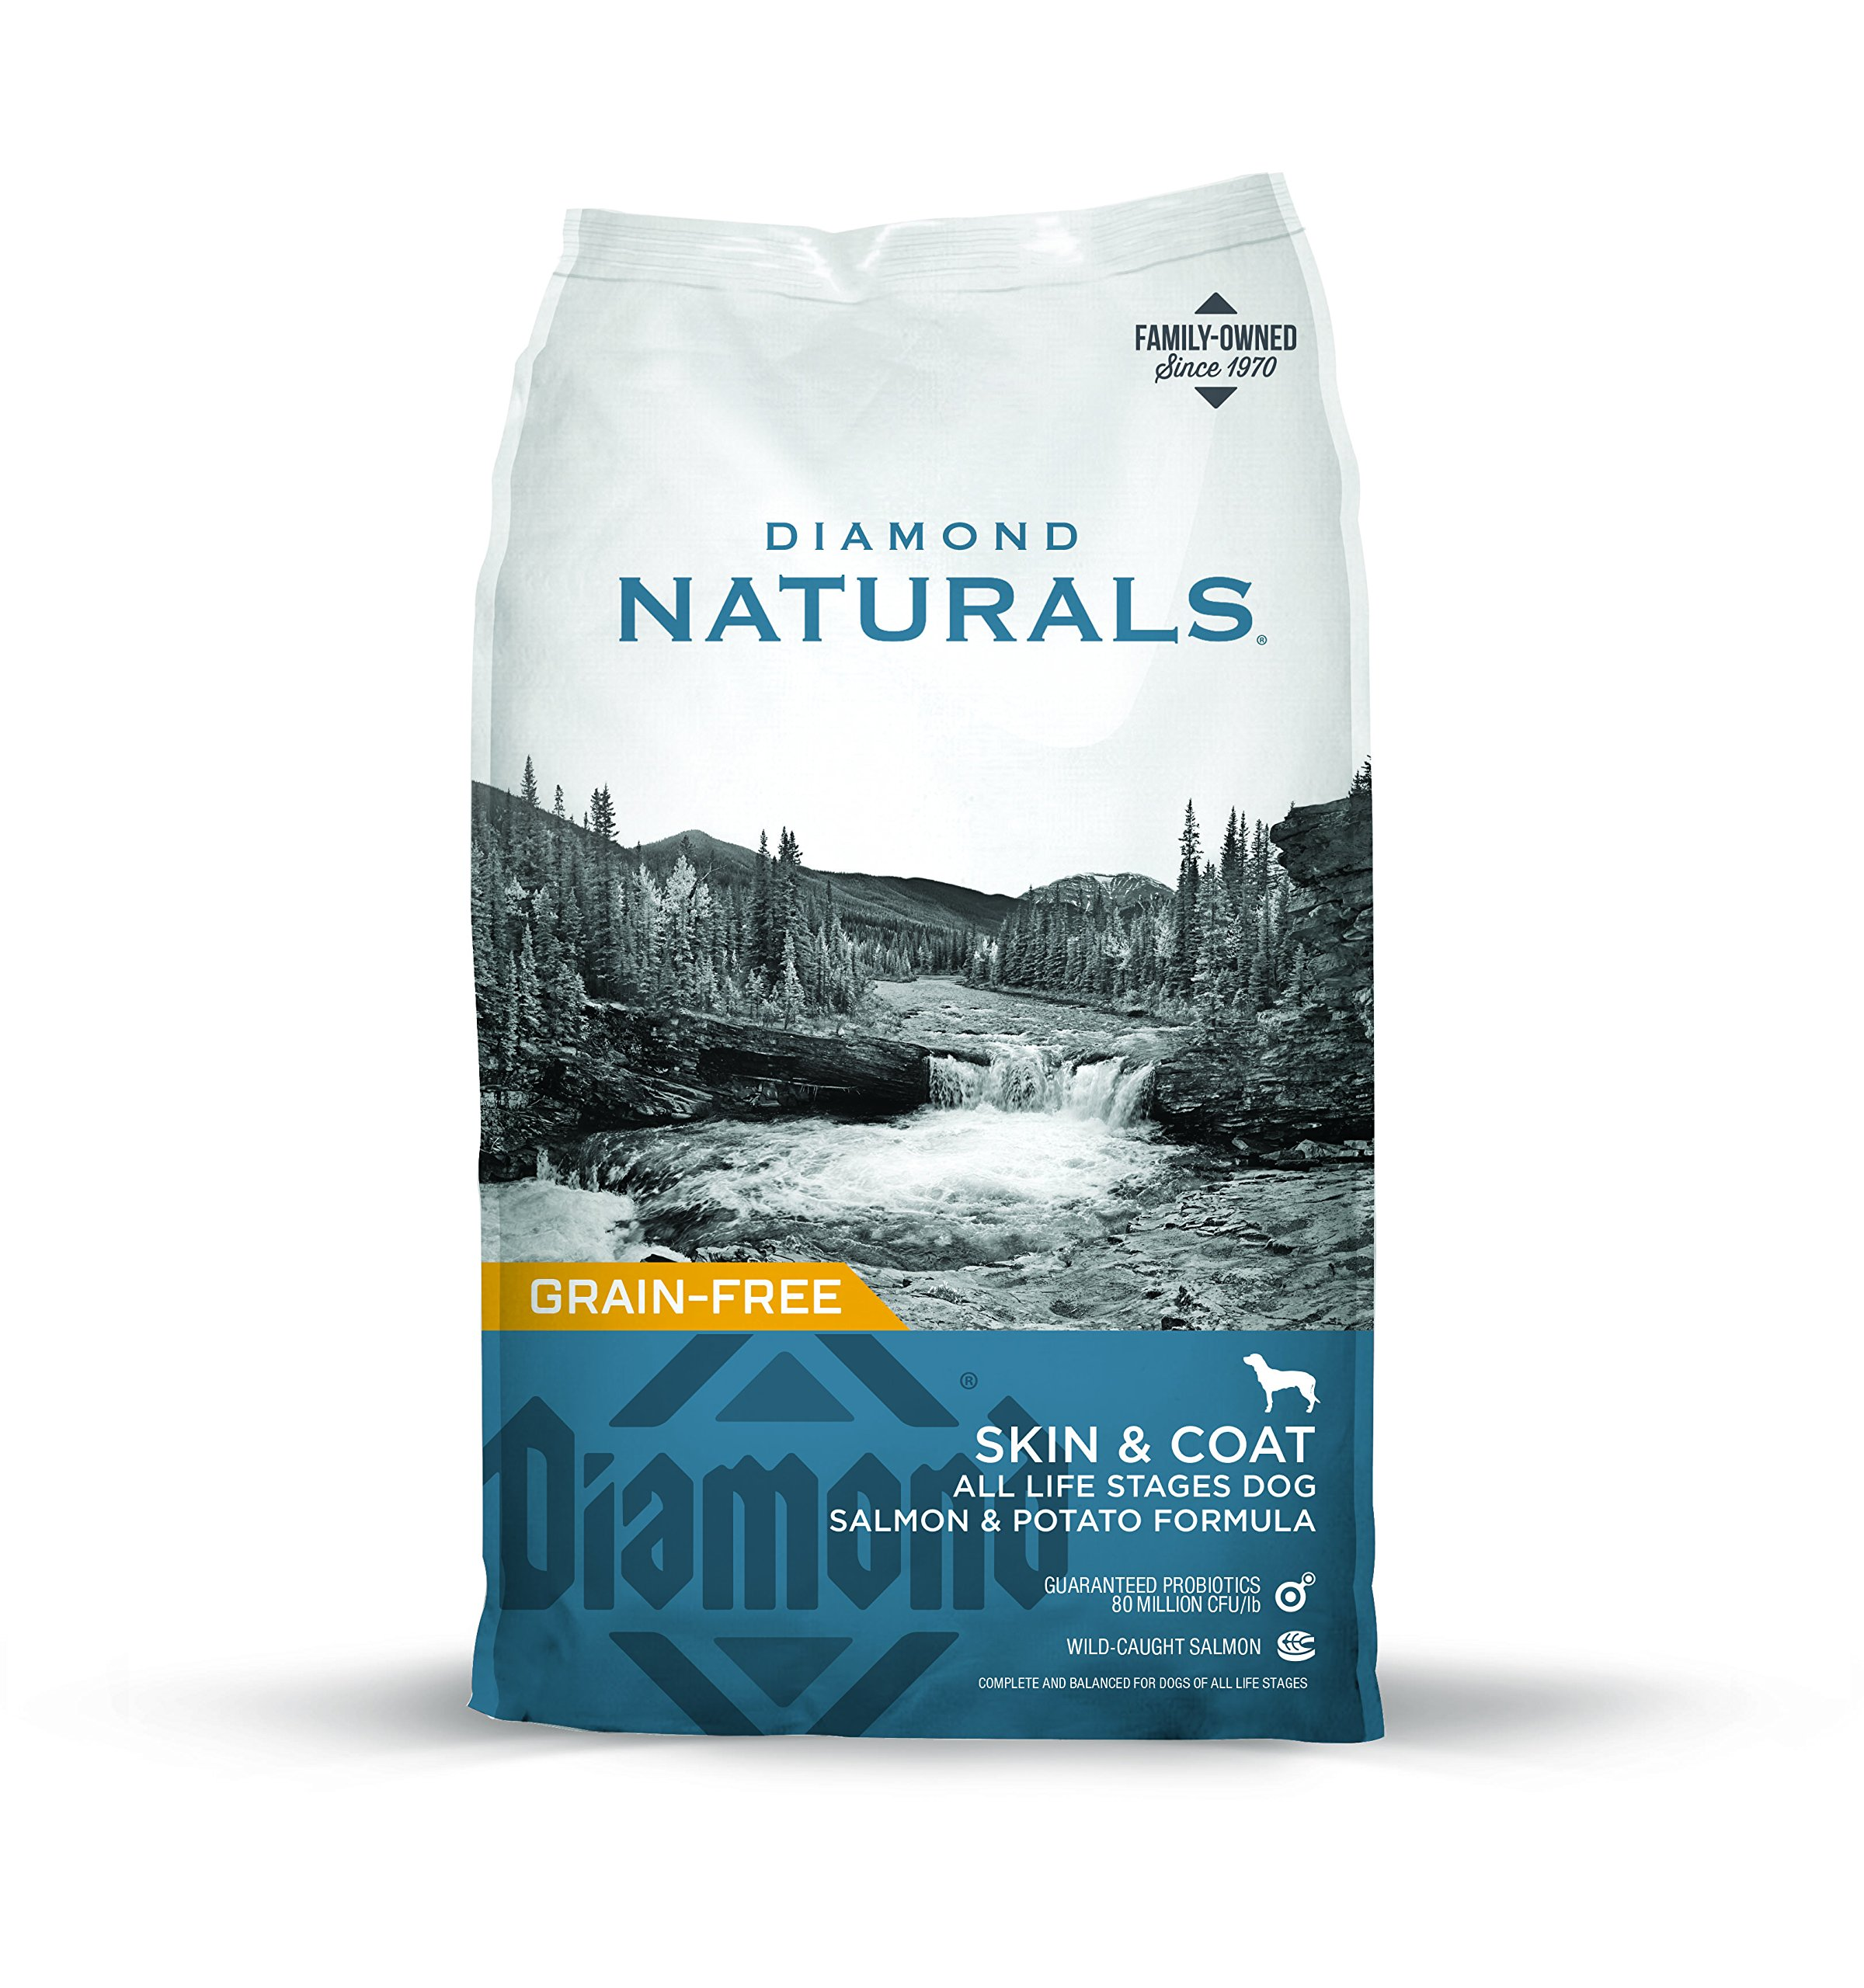 Diamond Naturals Skin & Coat Real Meat Recipe Natural Dry Dog Food with Wild Caught Salmon 30lb by DIAMOND NATURALS